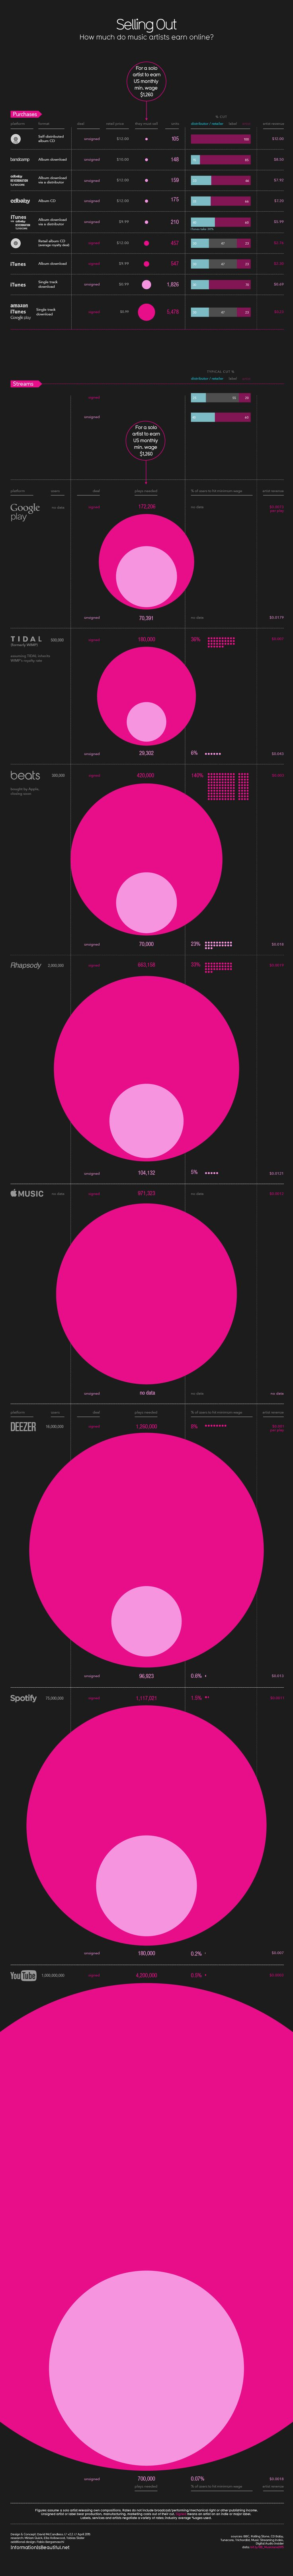 How Much Do Music Artists Earn Online – 2015 Remix | Information is Beautiful